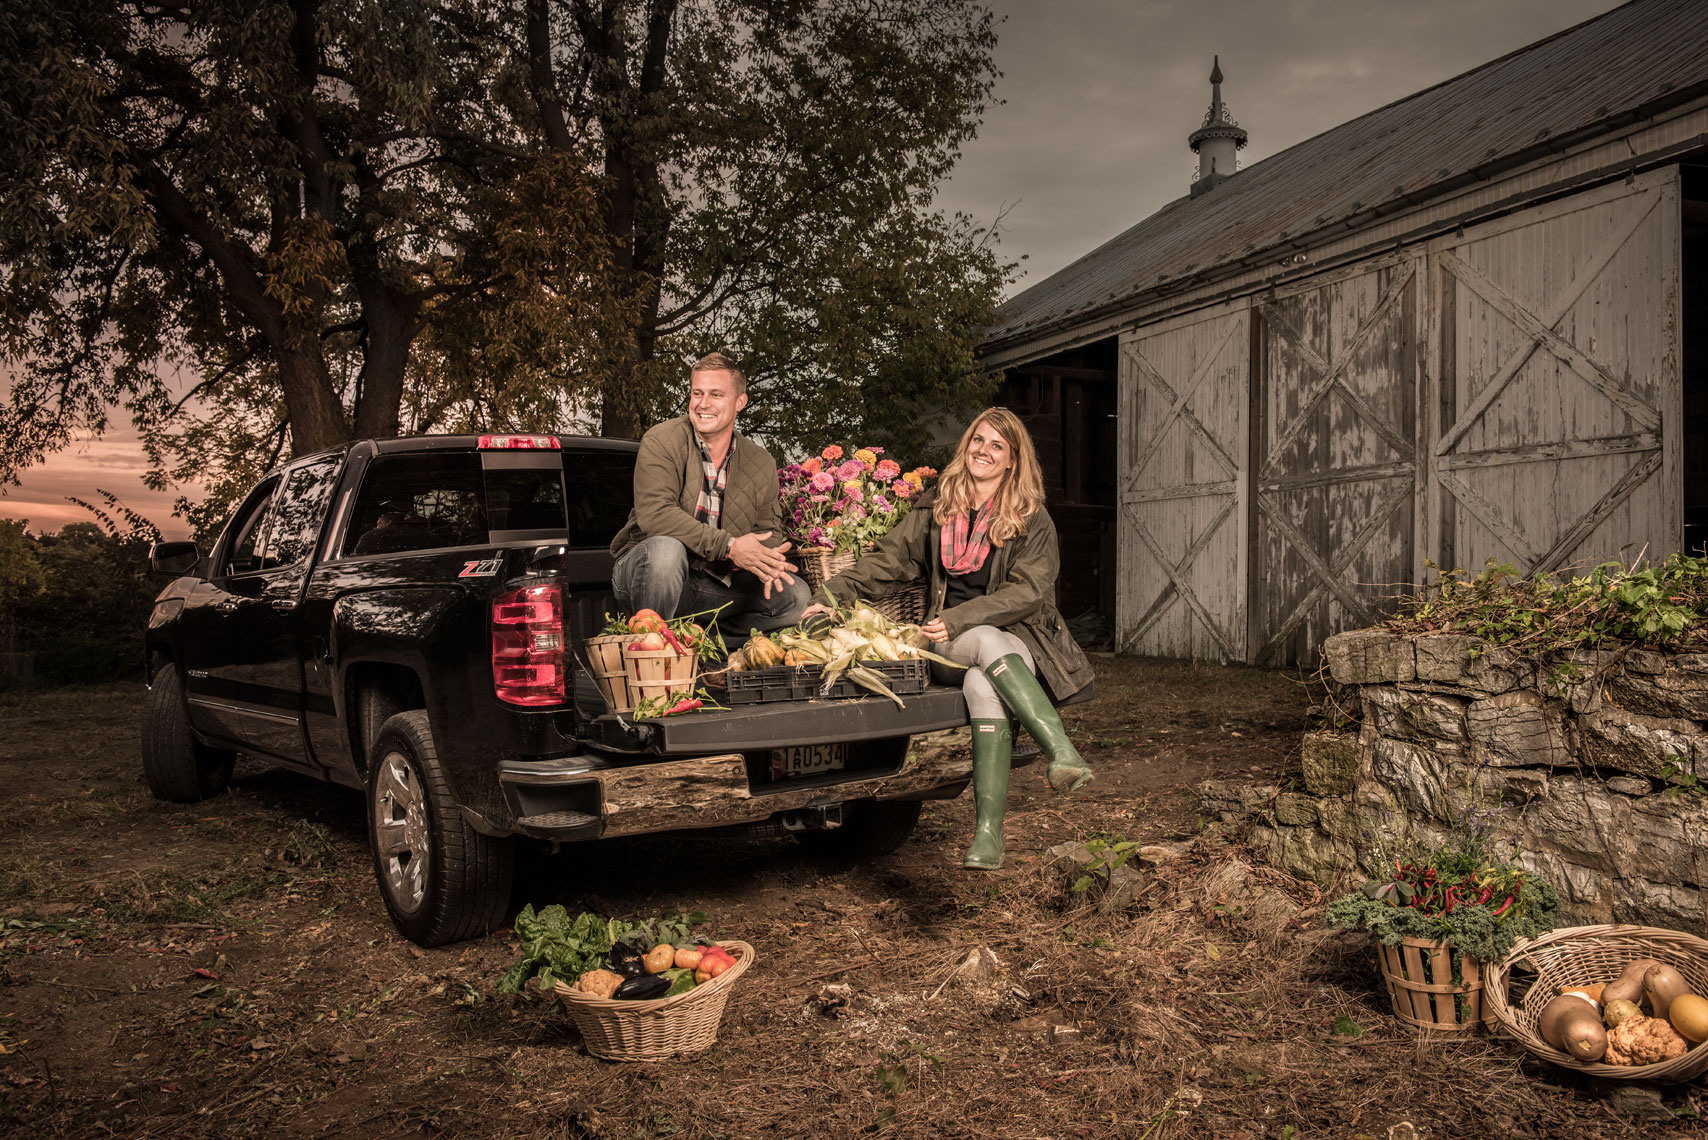 A man and a woman on the back of a pickup truck with fresh produce on a farm